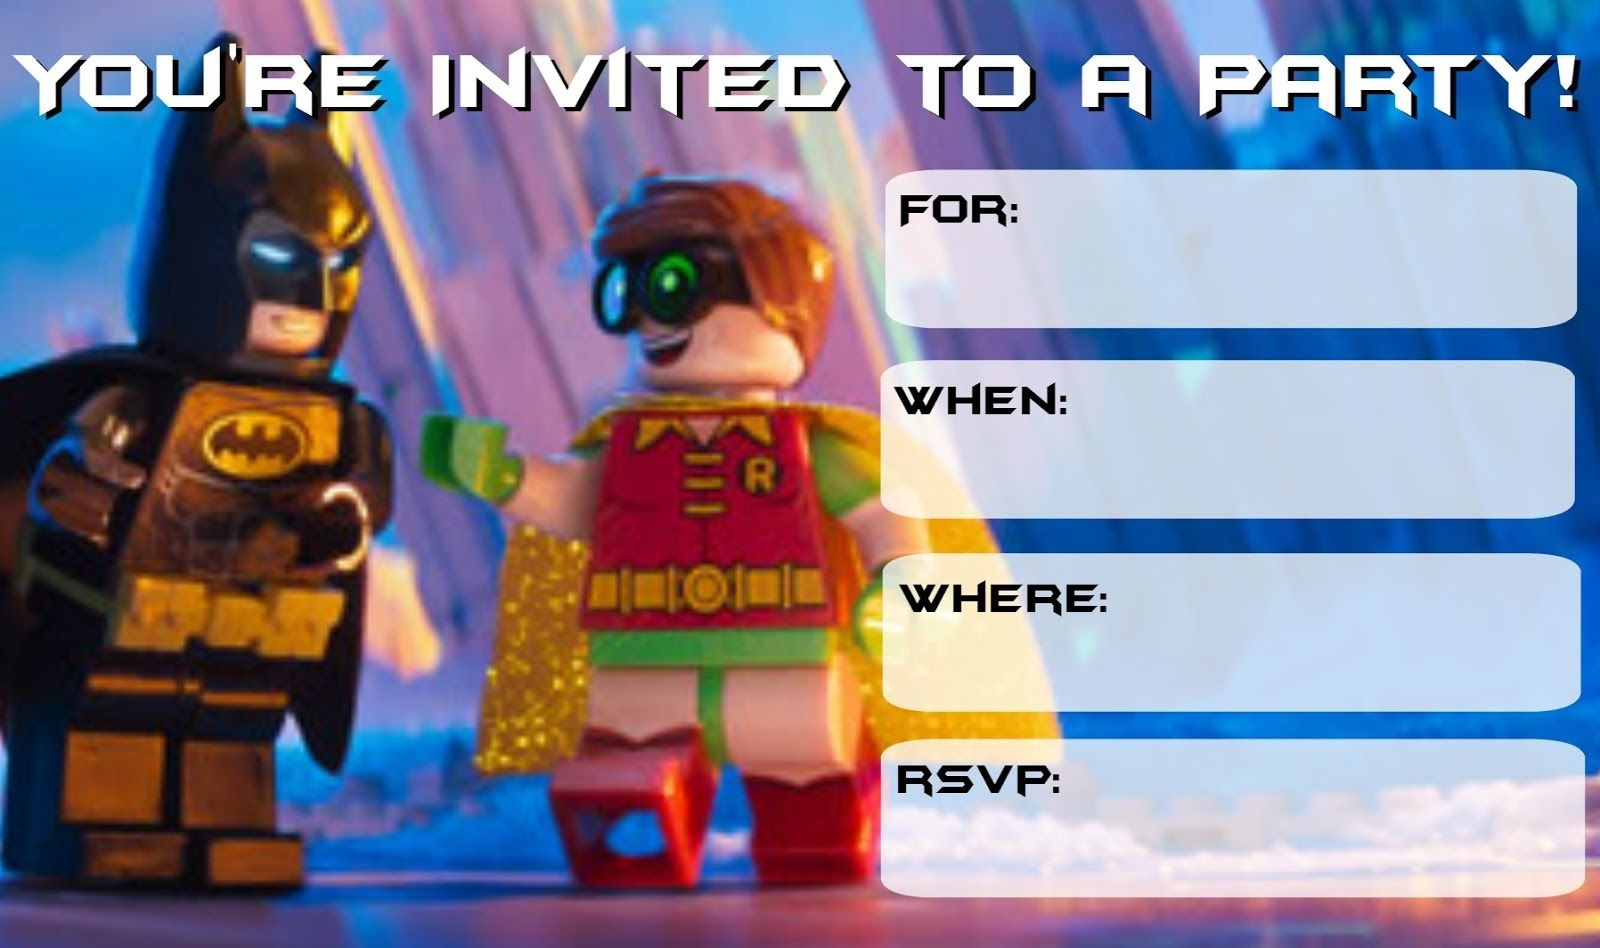 More Lego Batman Party Invitations | Drew's Birthday | Lego Batman - Lego Batman Invitations Free Printable